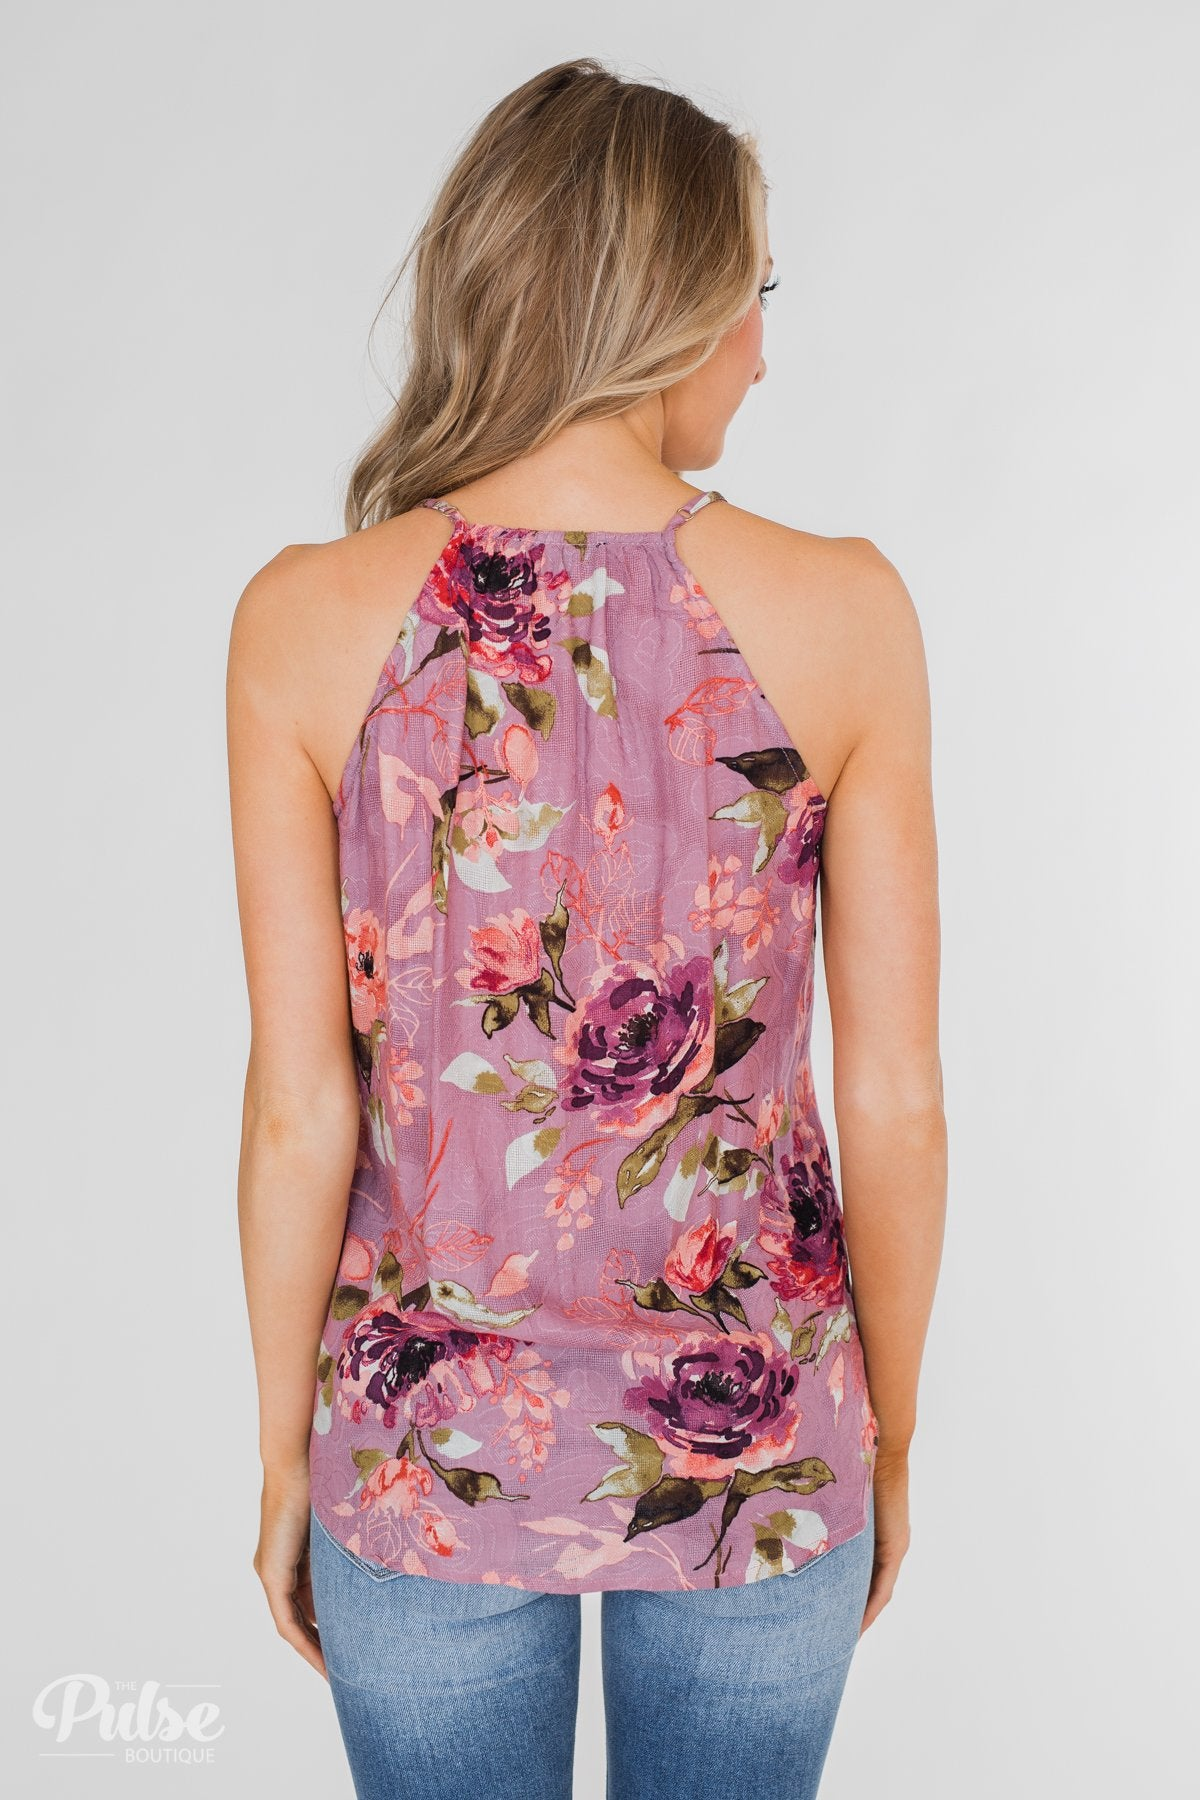 Dreaming of Floral Ruffle Tank Top - Orchid